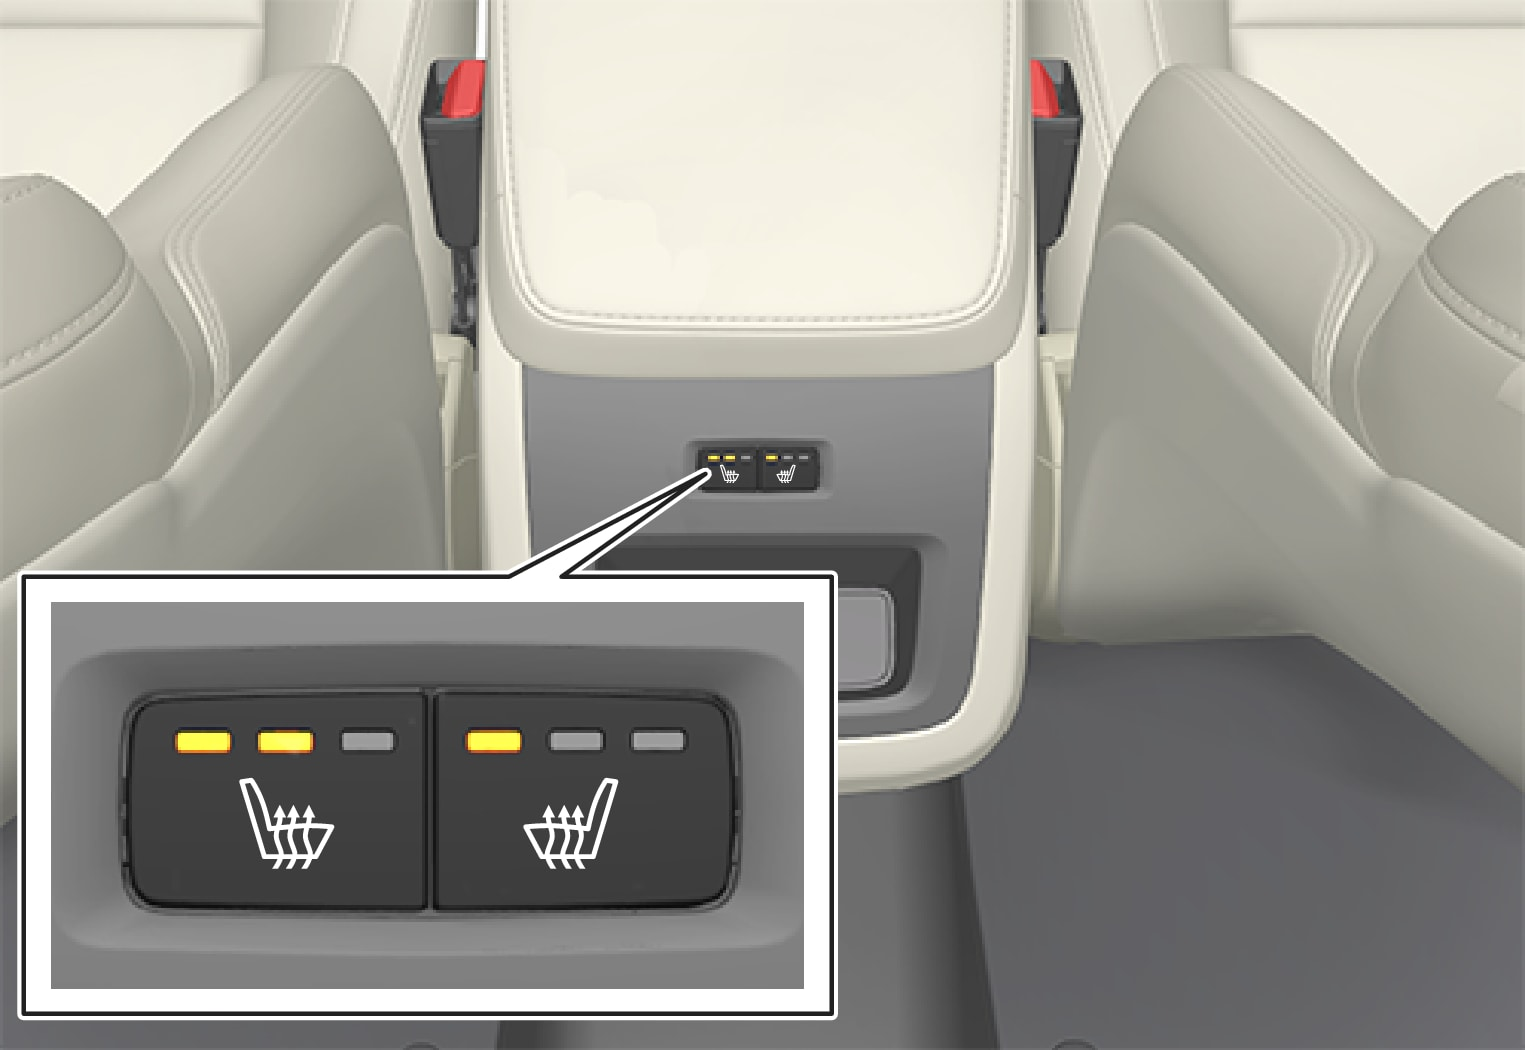 P5-1507–Climate–Rear climate controls physical seat